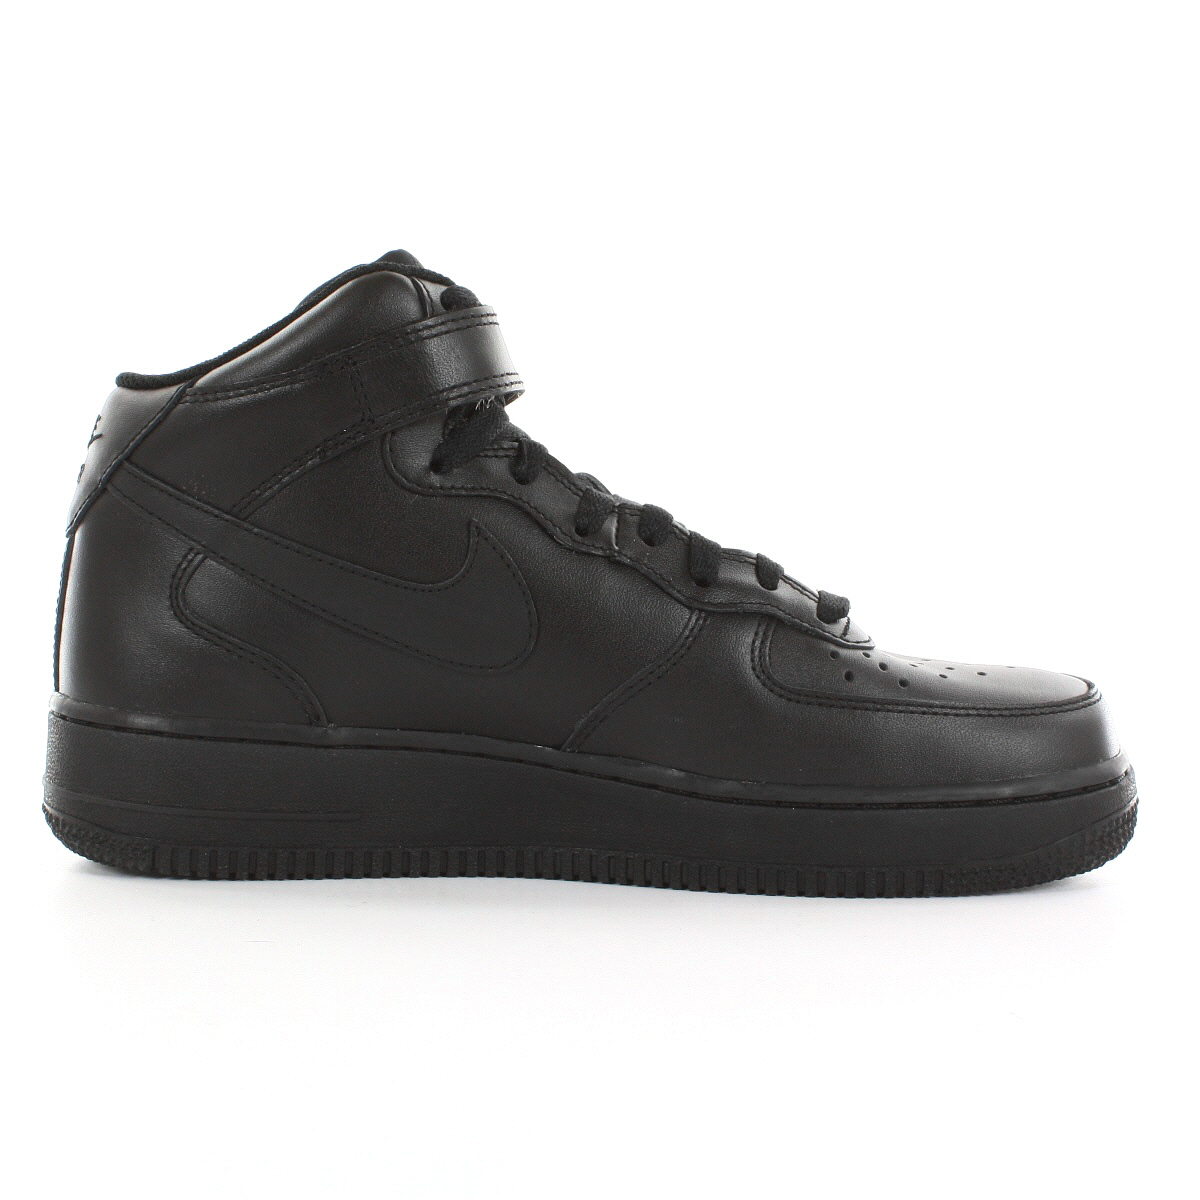 Chaussures Baskets Nike homme Air Obliger 1 mid Cuir '07 taille Noir Noire Cuir mid Lacets 556677